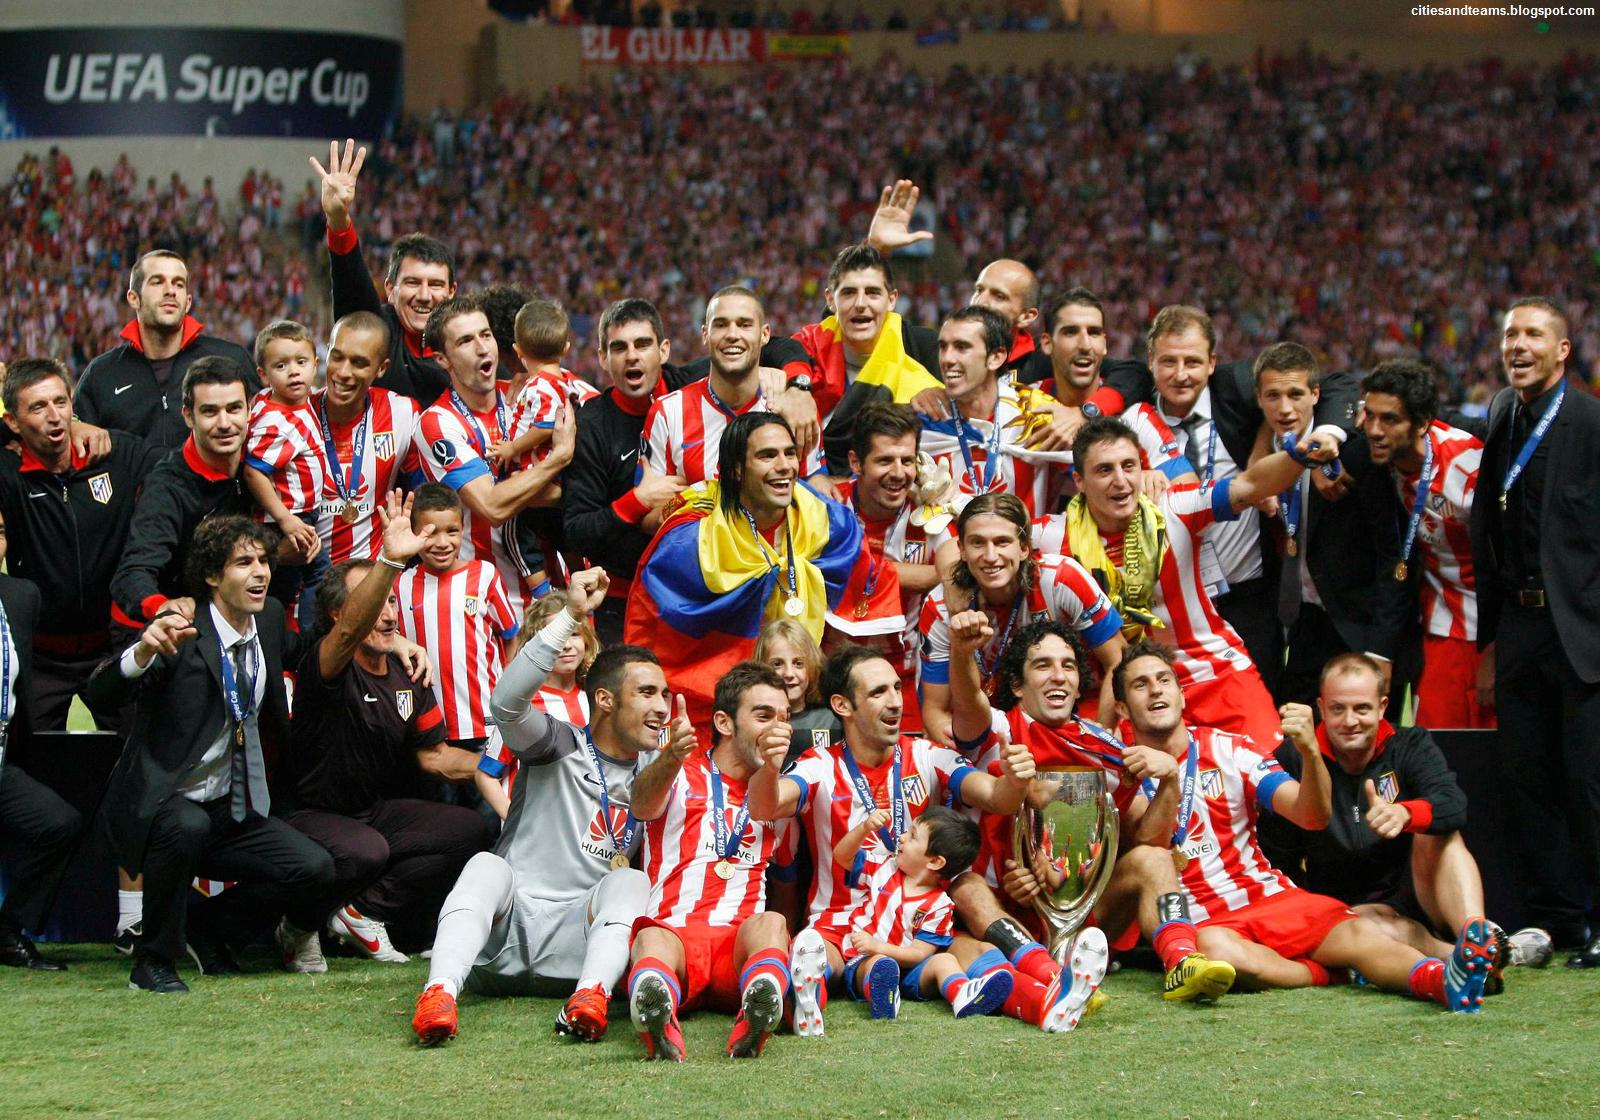 http://4.bp.blogspot.com/-Rjrxxsz9B4g/UEJoAmGmqDI/AAAAAAAAHik/o9fHlhtPKmU/s1600/Super_Atletico_Madrid_2012_Uefa_Super_Cup_Champion_Spanish_Team_Spain_Hd_Desktop_Wallpaper_citiesandteams.blogspot.com.jpg